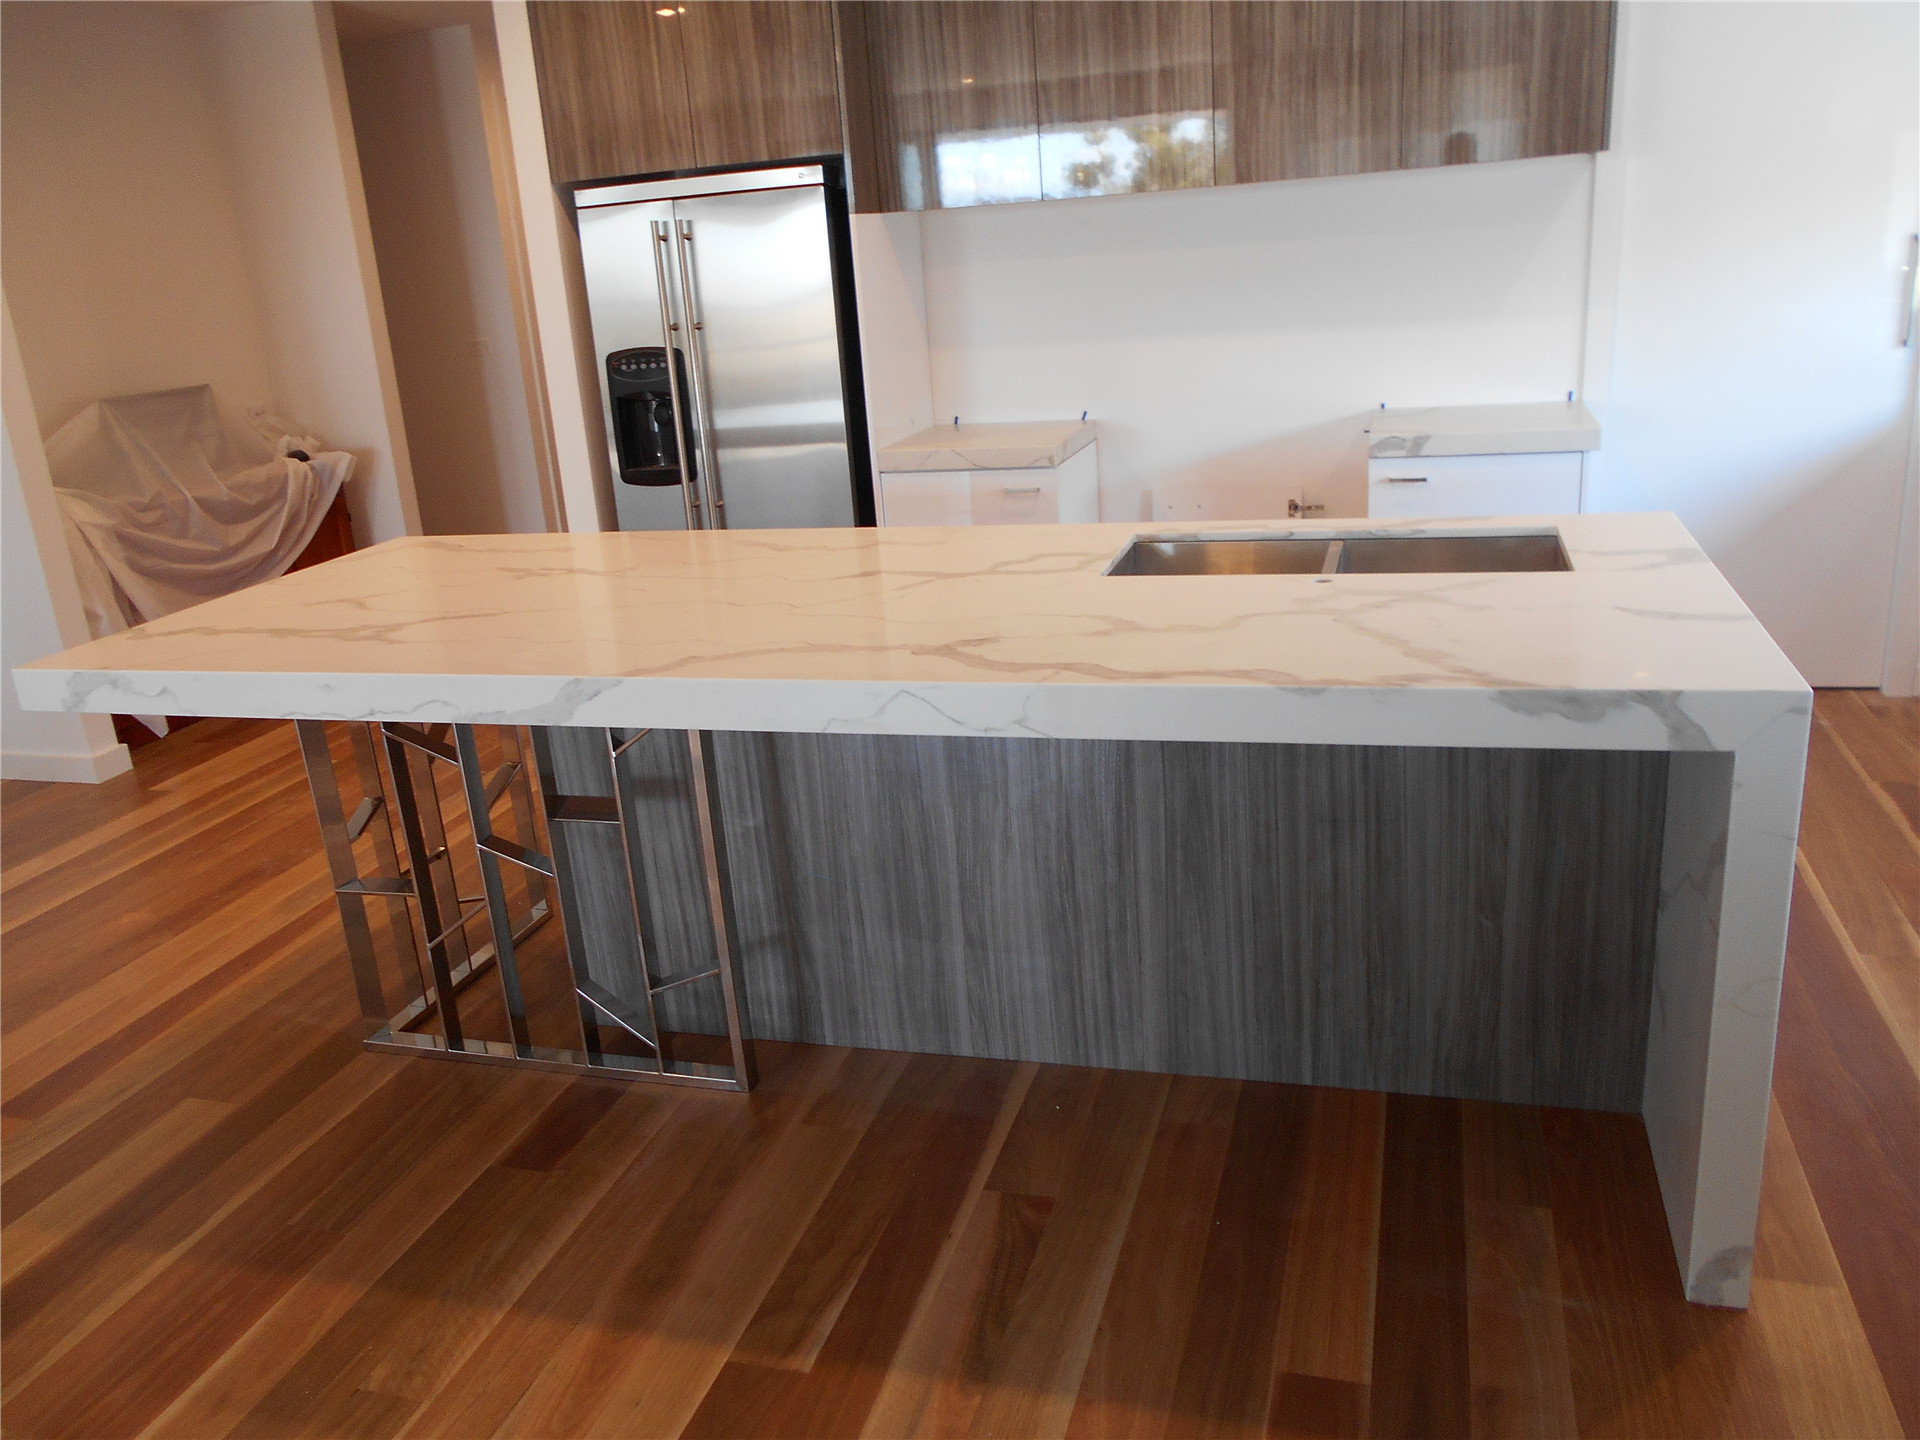 cheap stone benchtops Melbourne project image 31